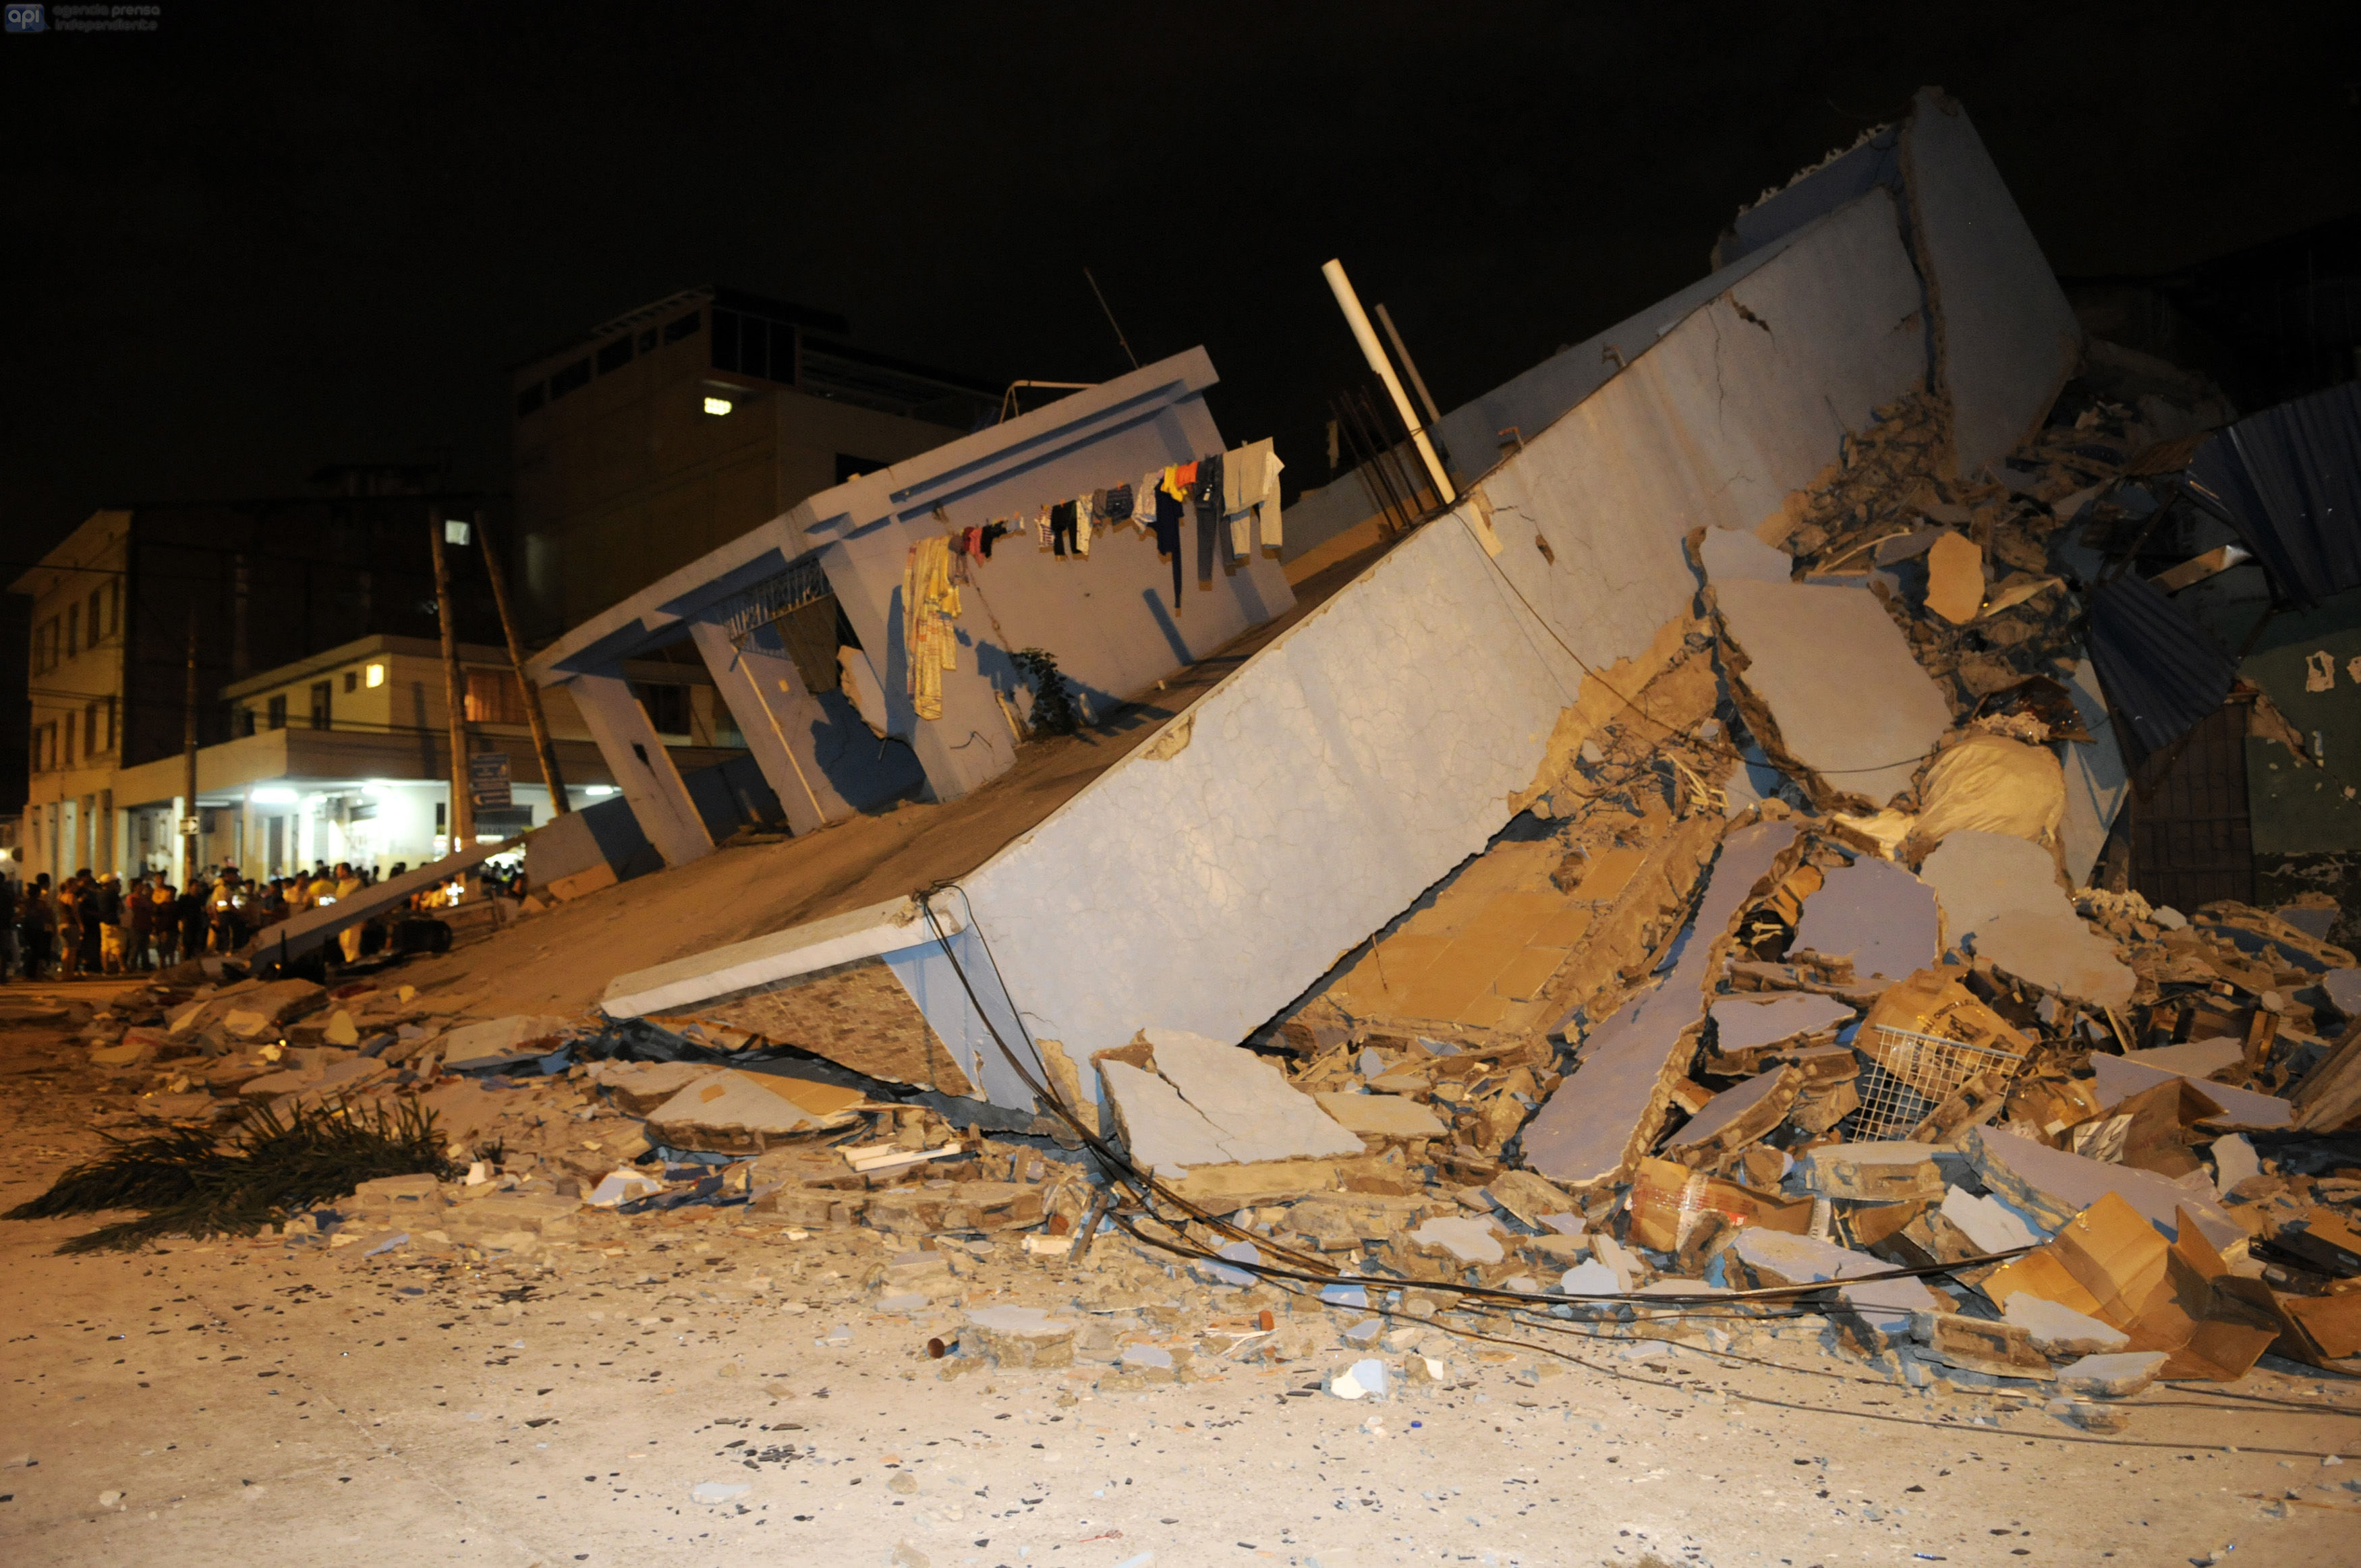 This picture shows a collapsed home after an earthquake in the city of Guayaquil on April 17, 2016. At least 77 people were killed when a powerful 7.8-magnitude earthquake struck Ecuador, destroying buildings and a bridge and sending terrified residents dashing from their homes, authorities in the Latin American country said on April 17. / AFP PHOTO / MARCOS PIN MENDEZ